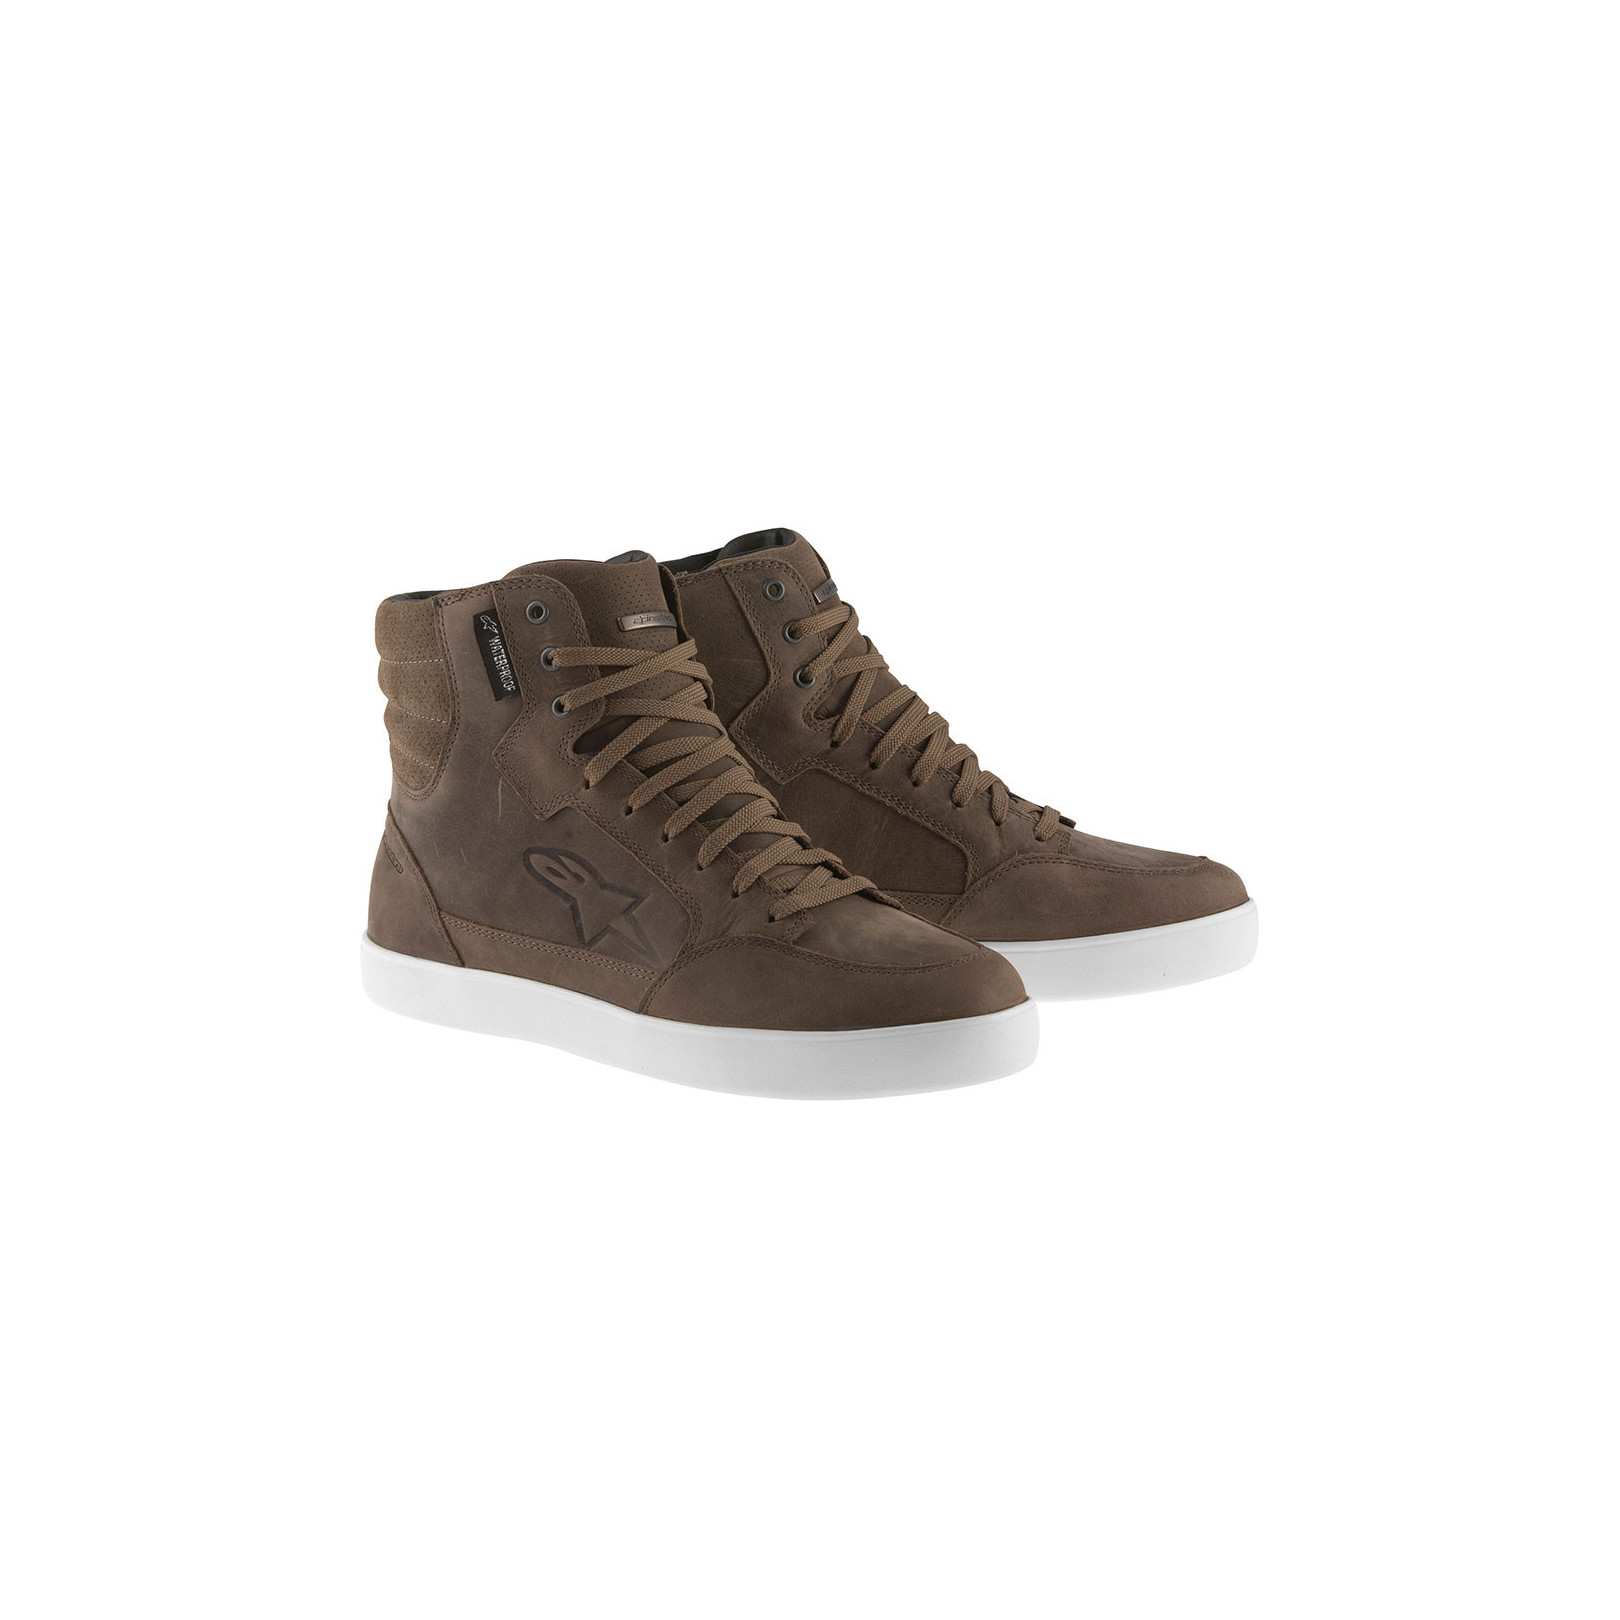 Baskets Alpinestars J-6 Waterproof Marron